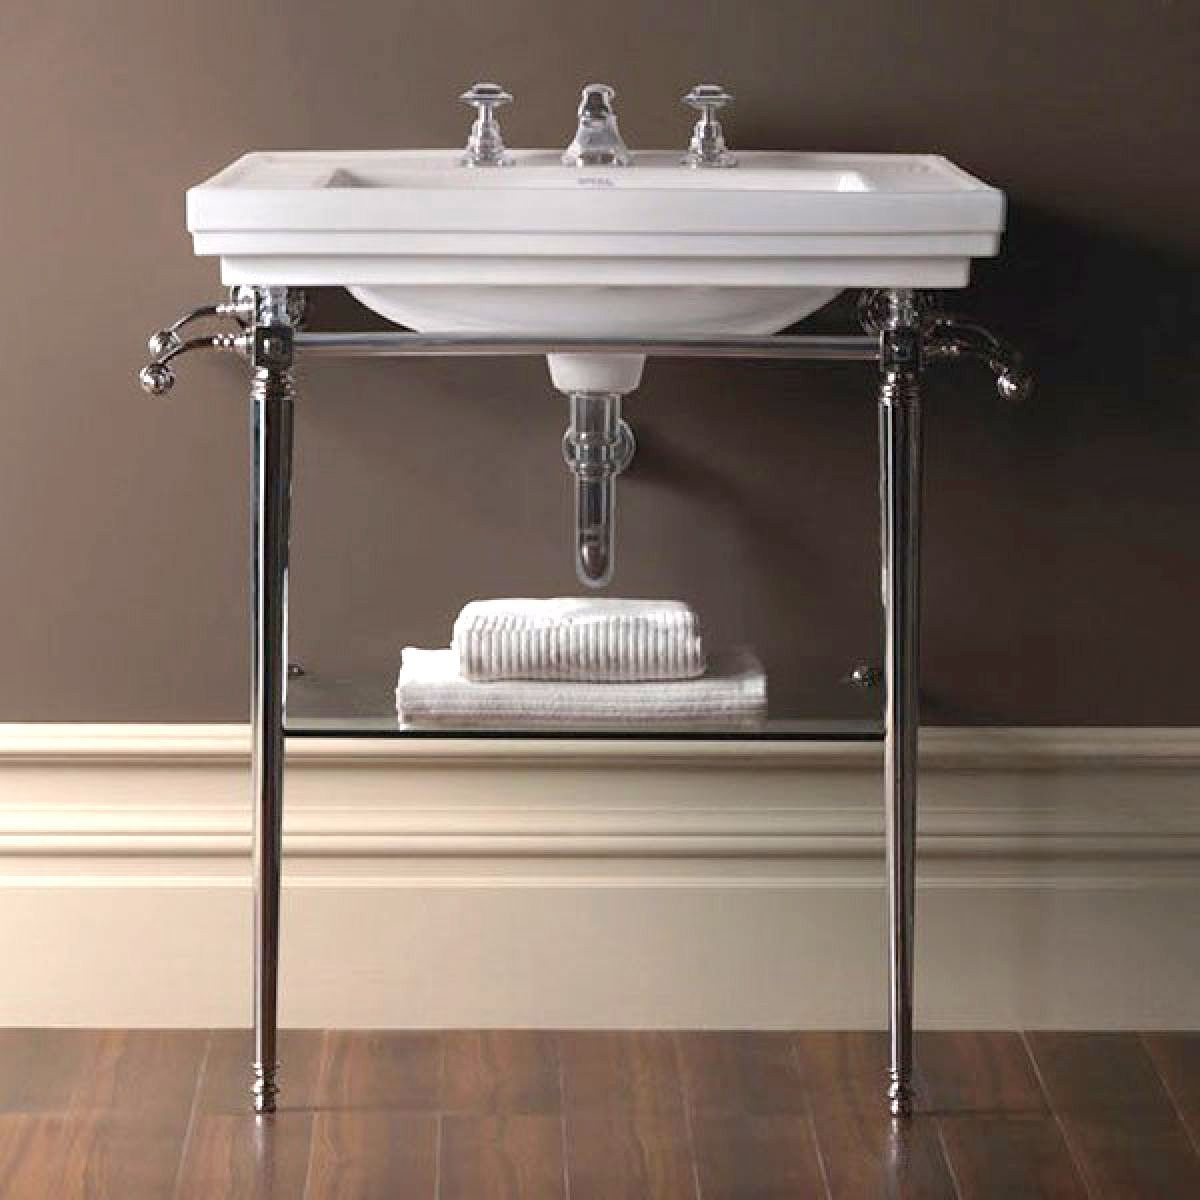 Imperial Large Basin Stand with Astoria Deco Basin : UK Bathrooms for Bathroom Basin Stands  56mzq